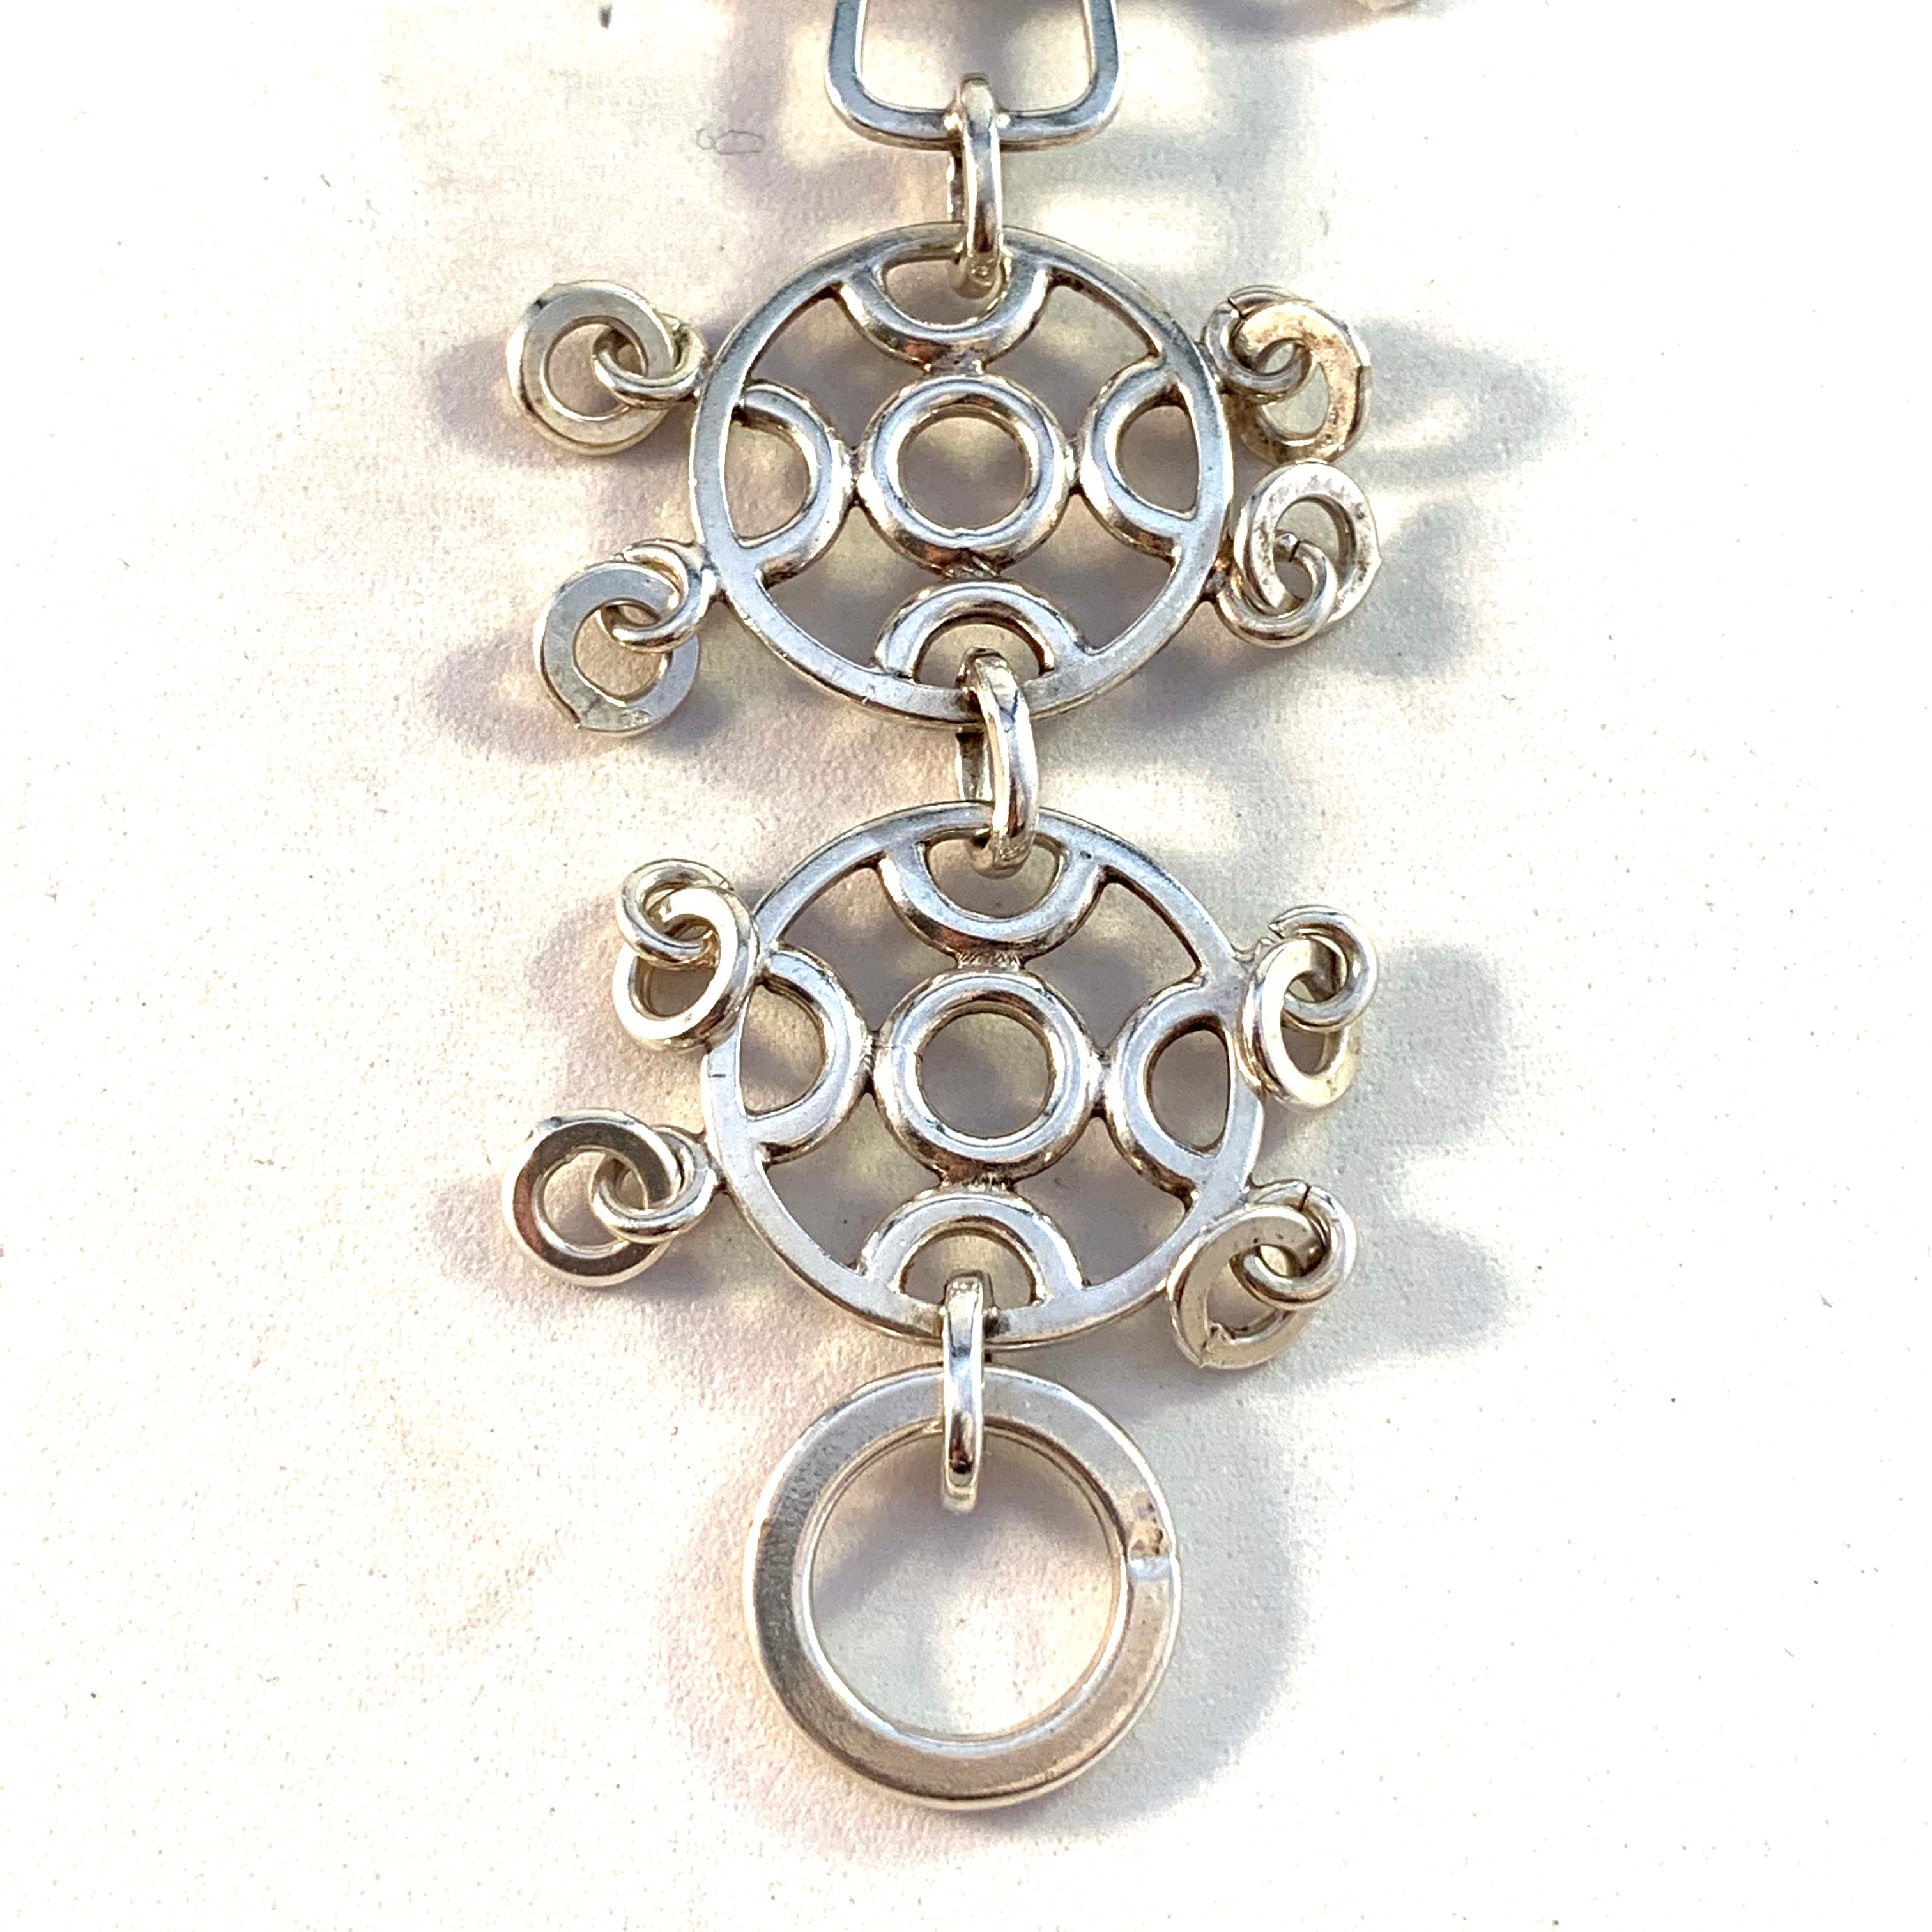 Juhls Kautokeino, Norway Vintage 1970s Huge Sterling Silver Traditional Pendant.